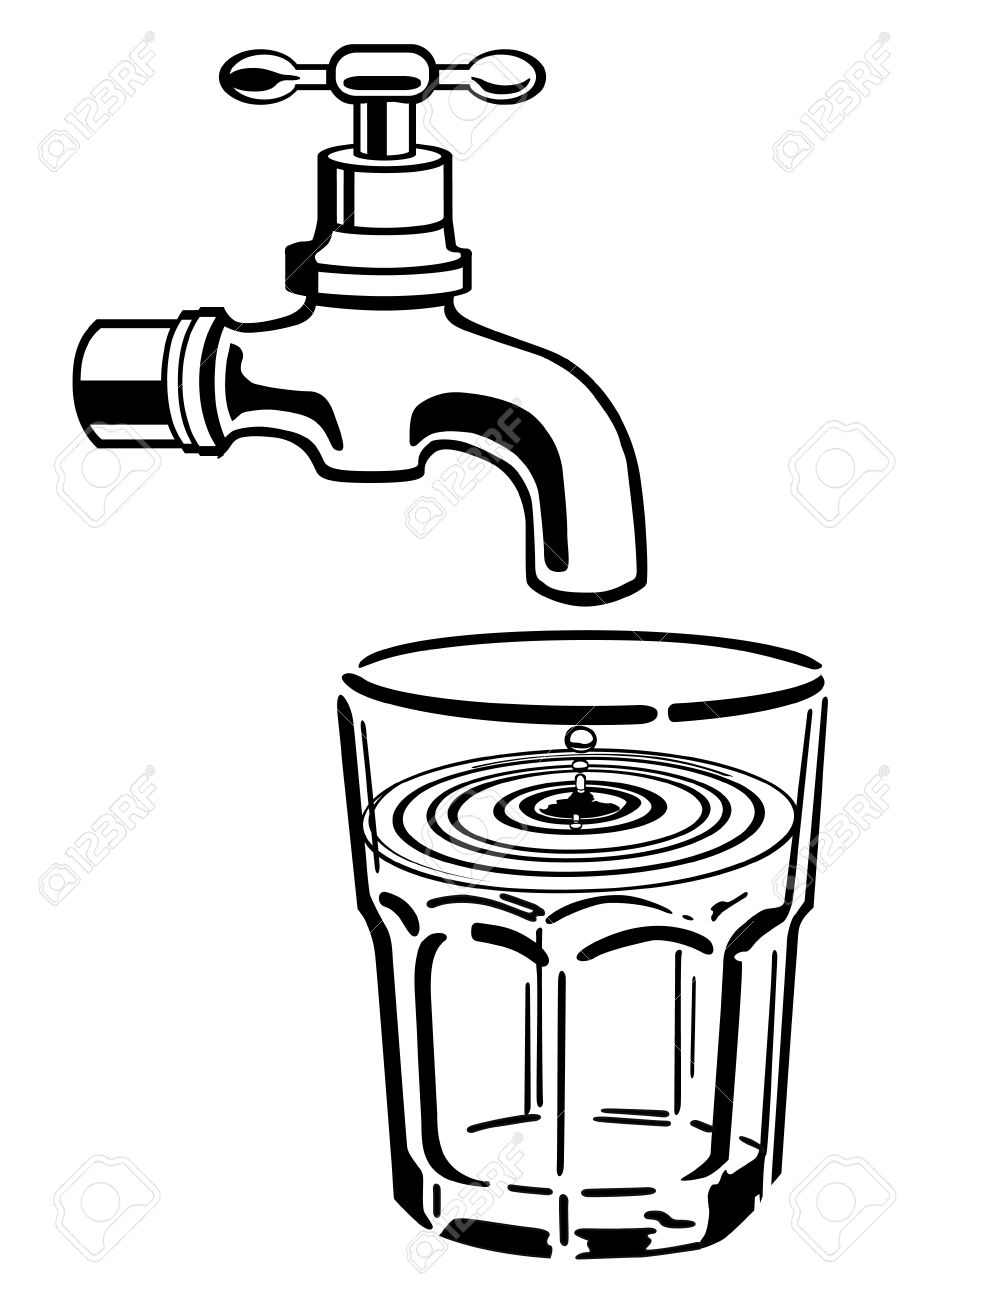 Save water clipart black and white 6 » Clipart Station.